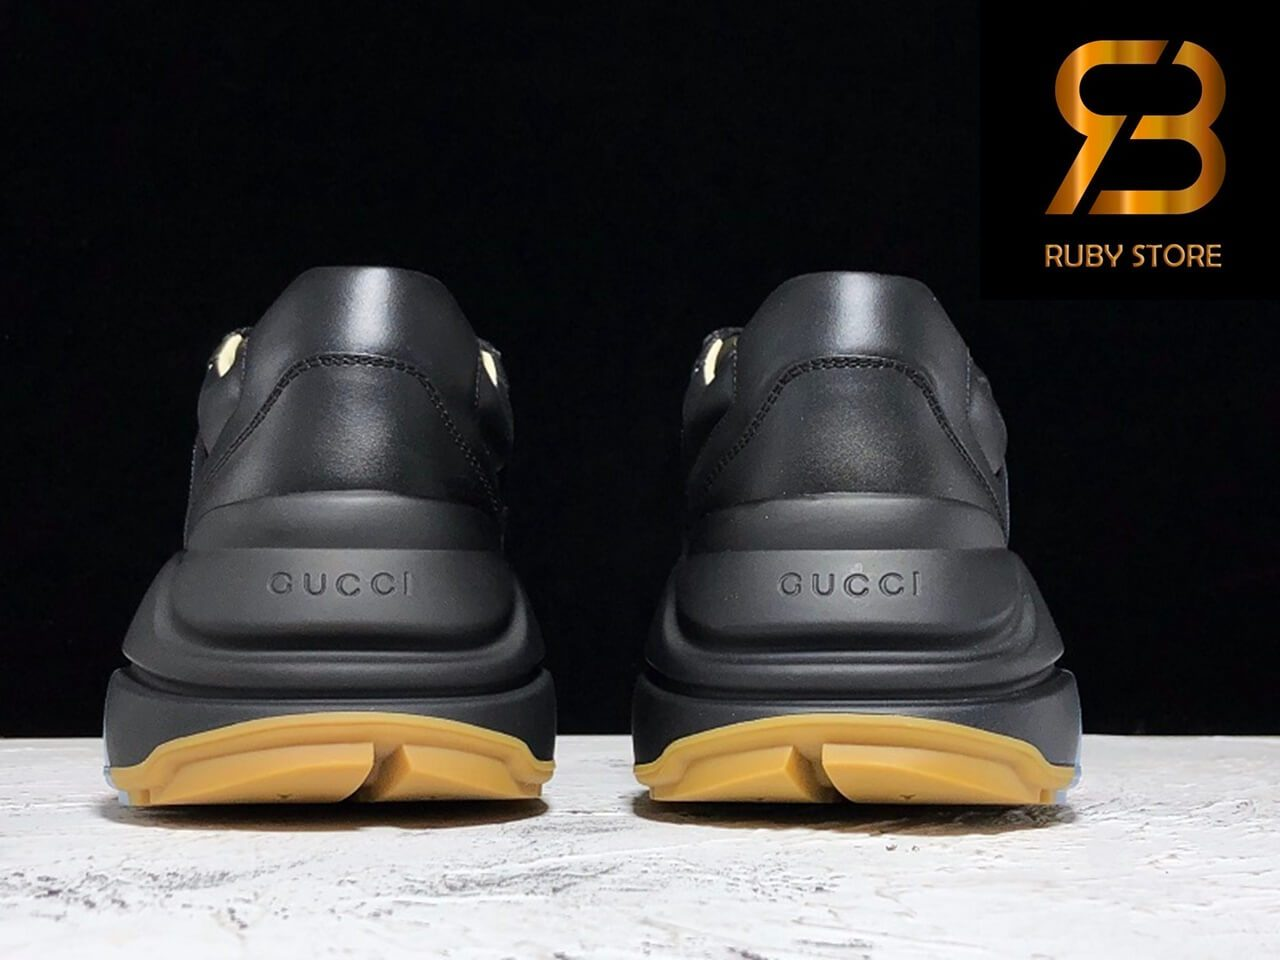 giày gucci rhyton web print leather black sneaker replica 1:1 siêu cấp 99,9%